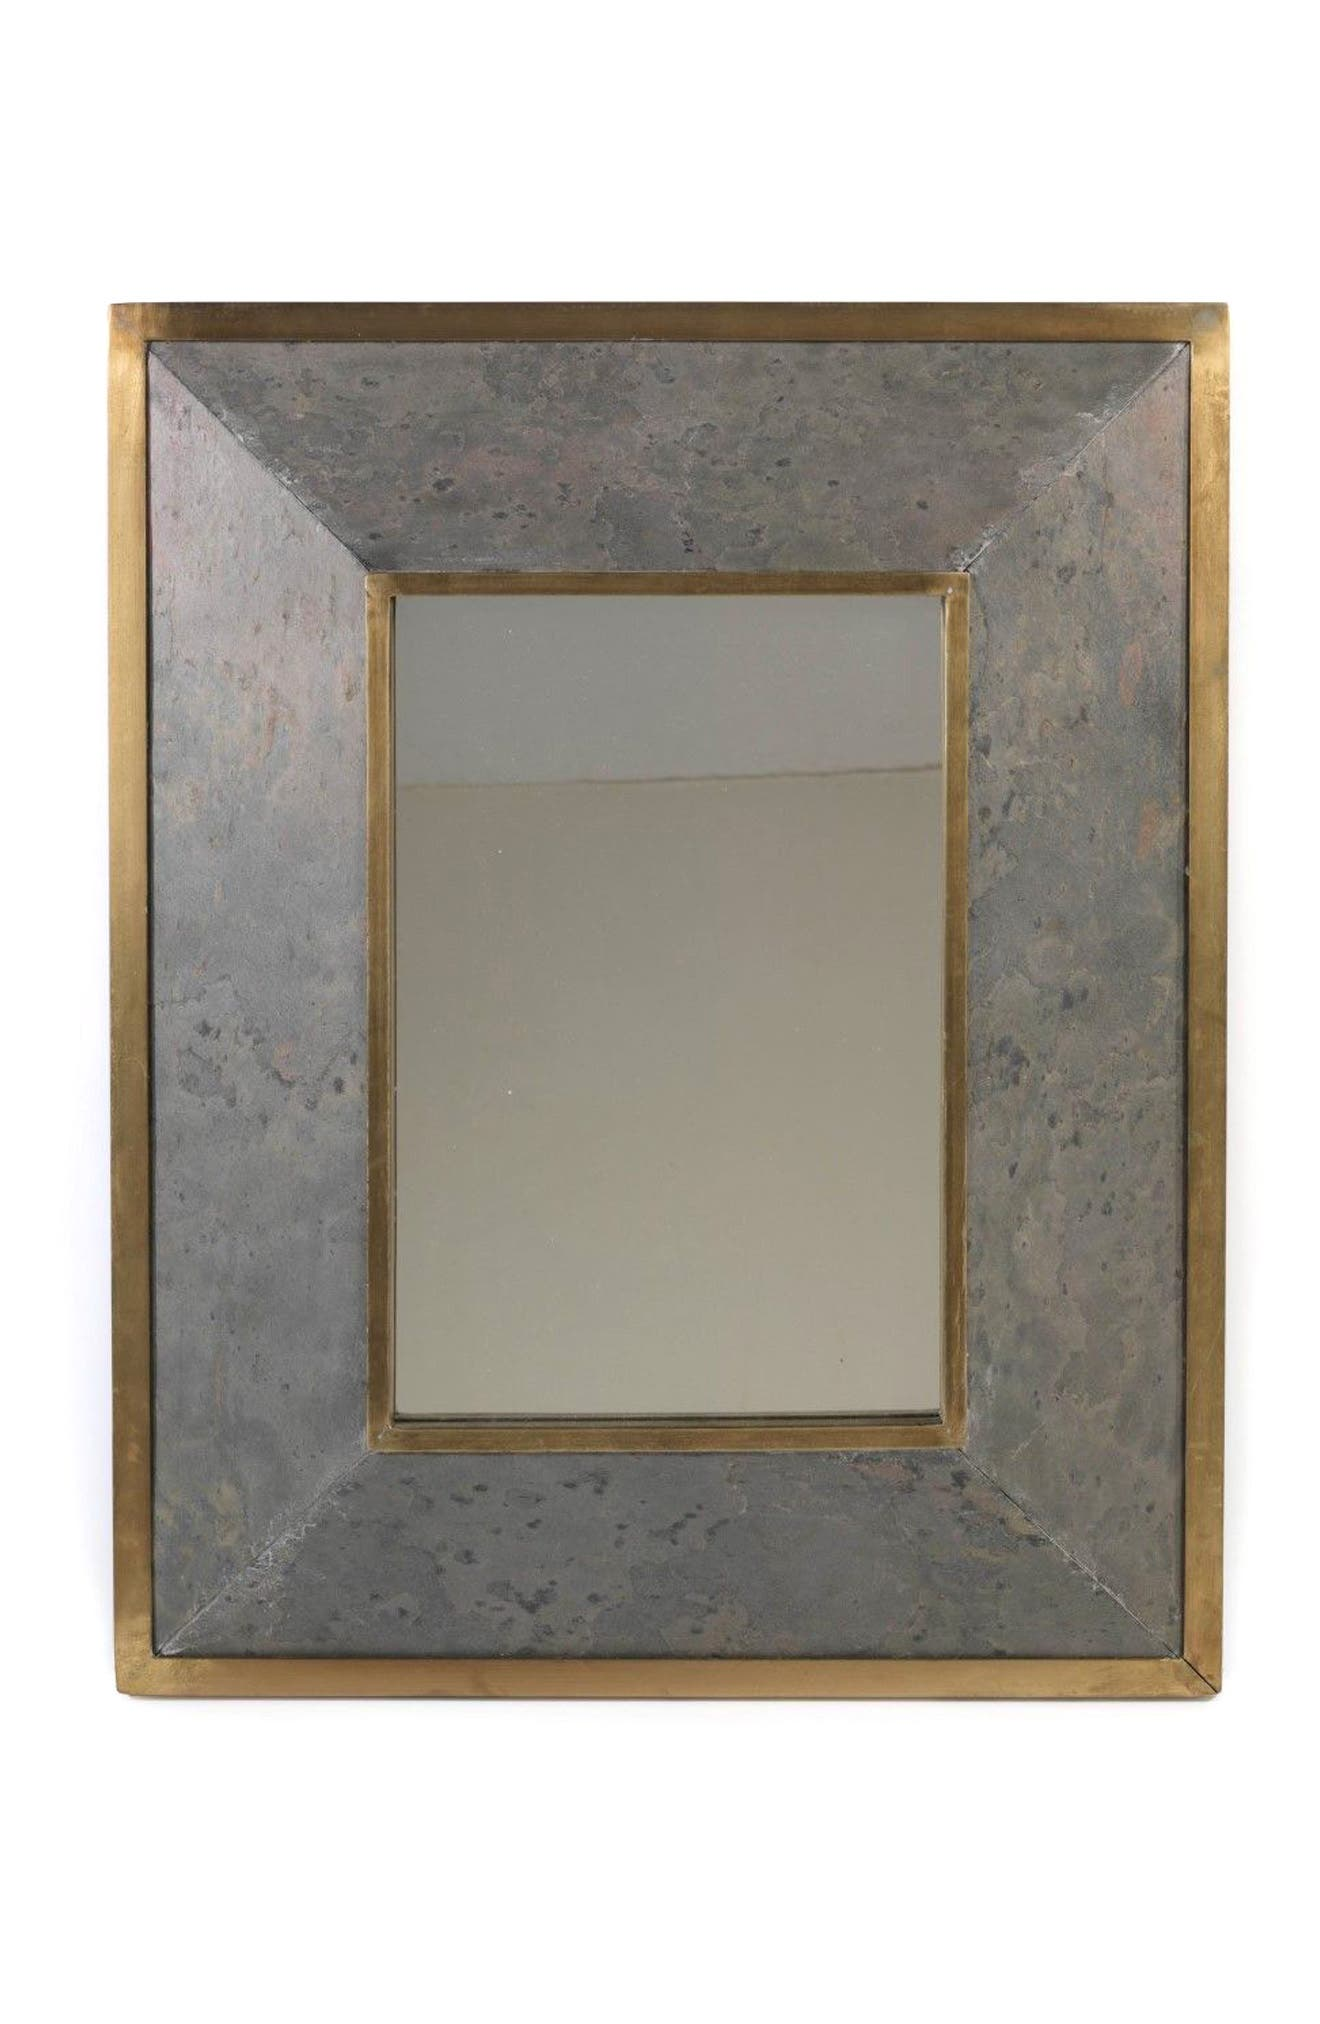 Lille Wall Mirror,                             Main thumbnail 1, color,                             Brown/ Silver/ Pewter